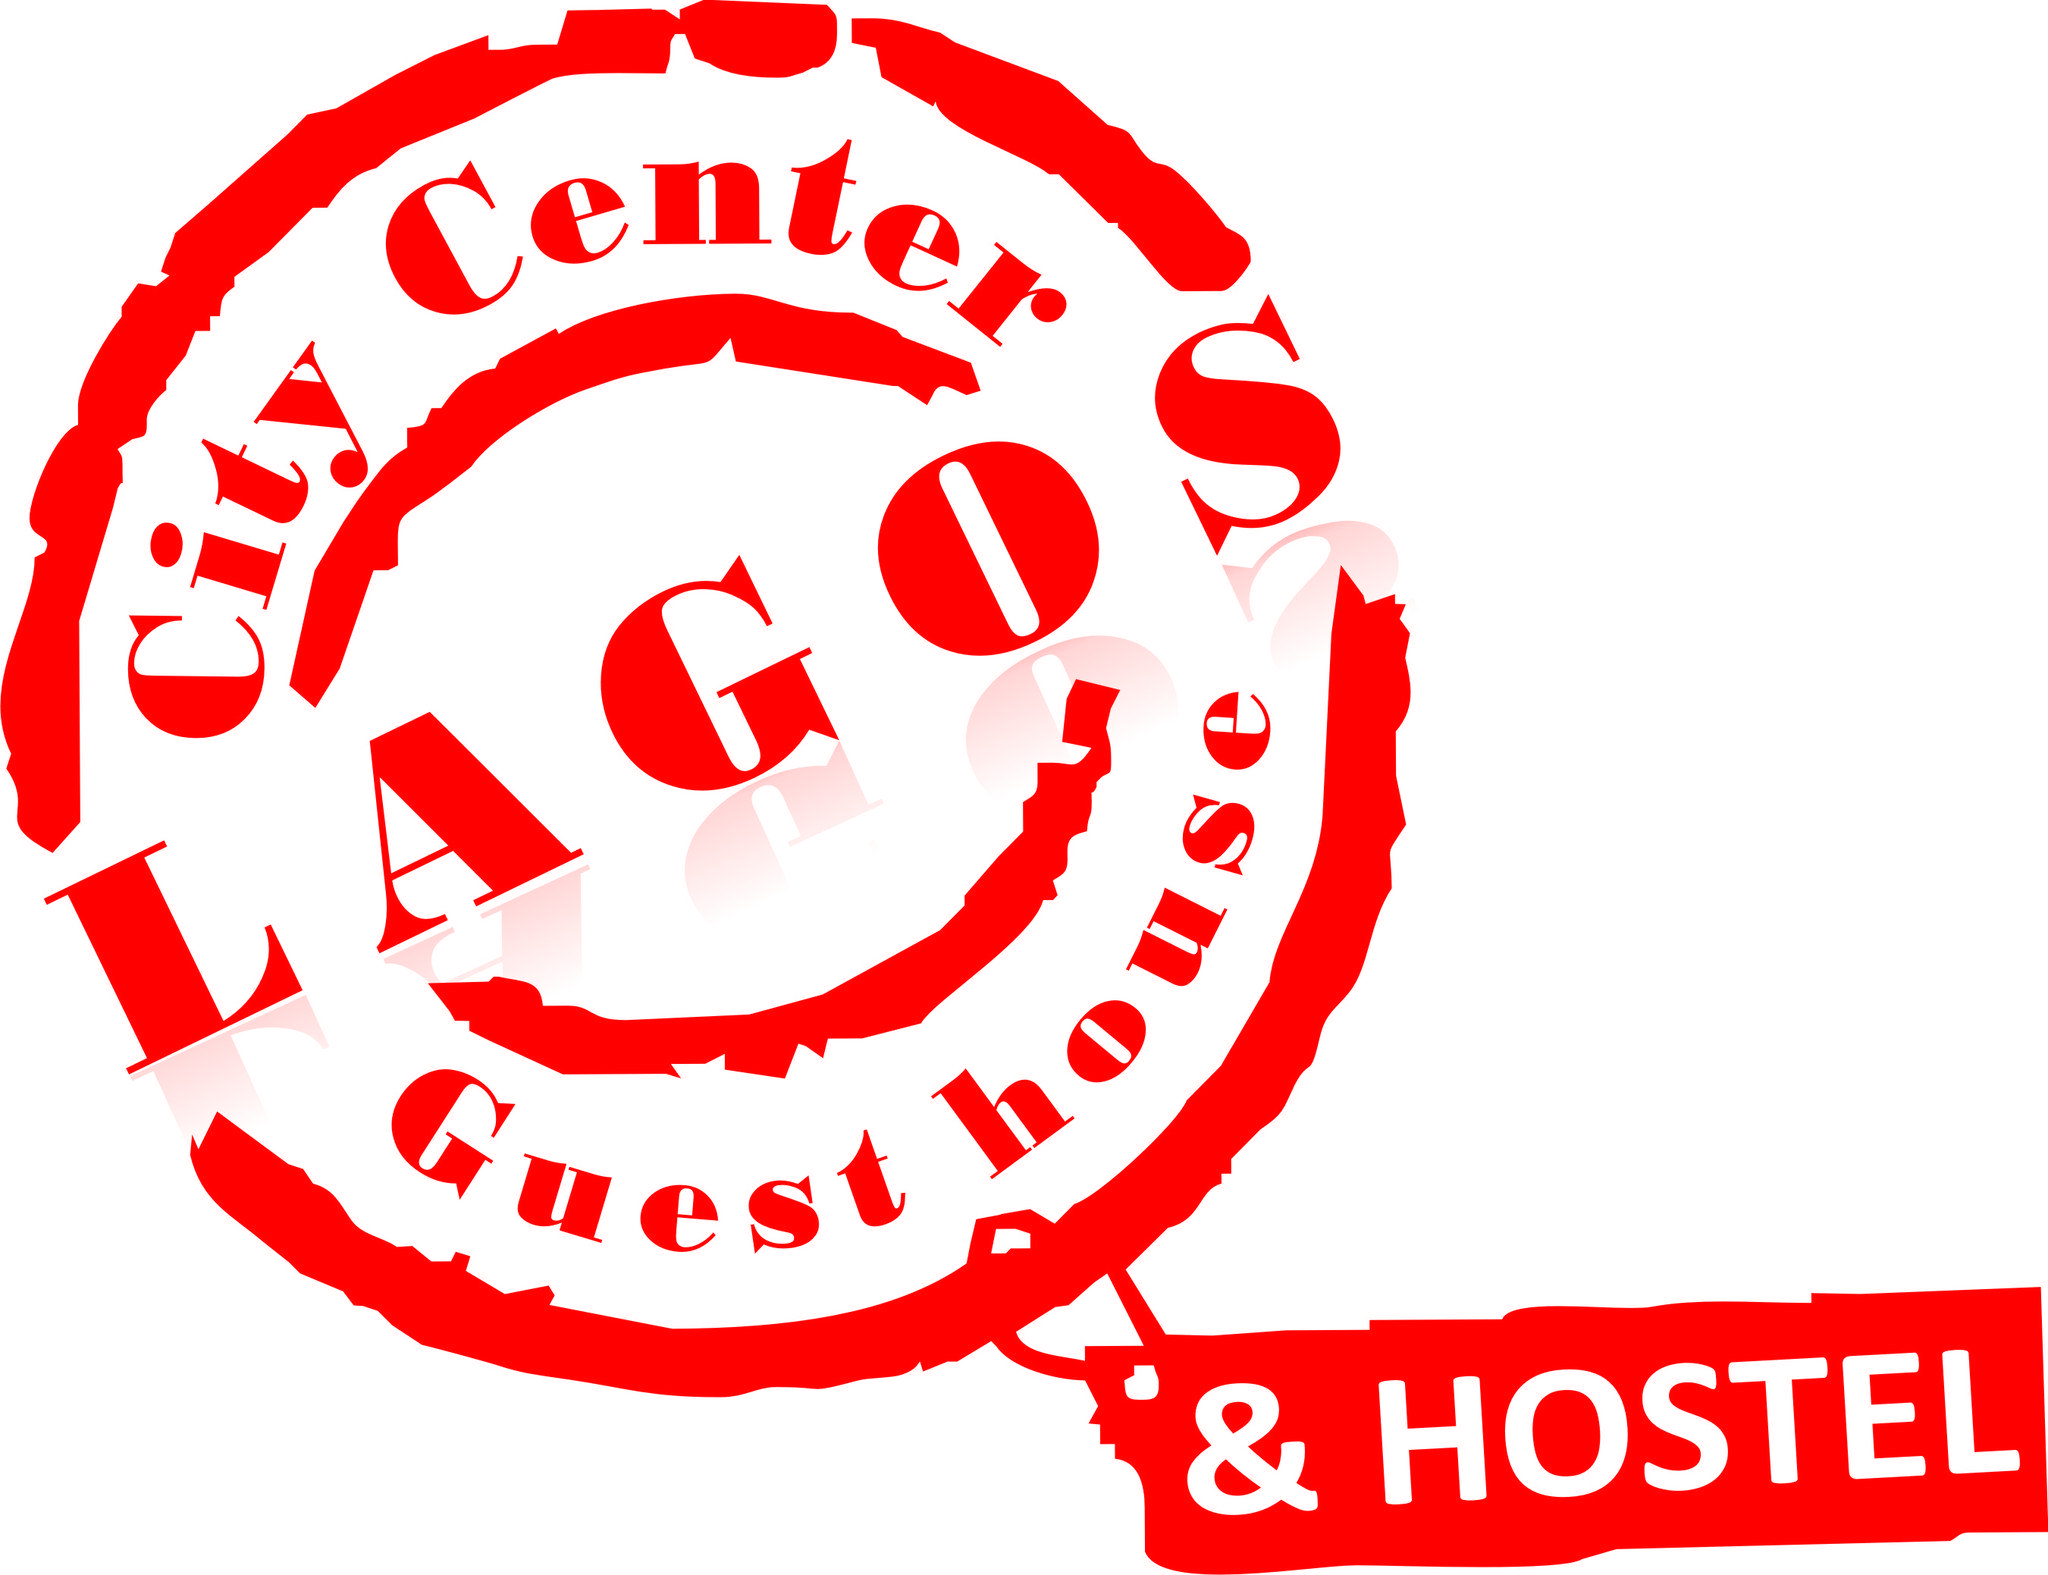 Lagos City Center Guest House & Hostel